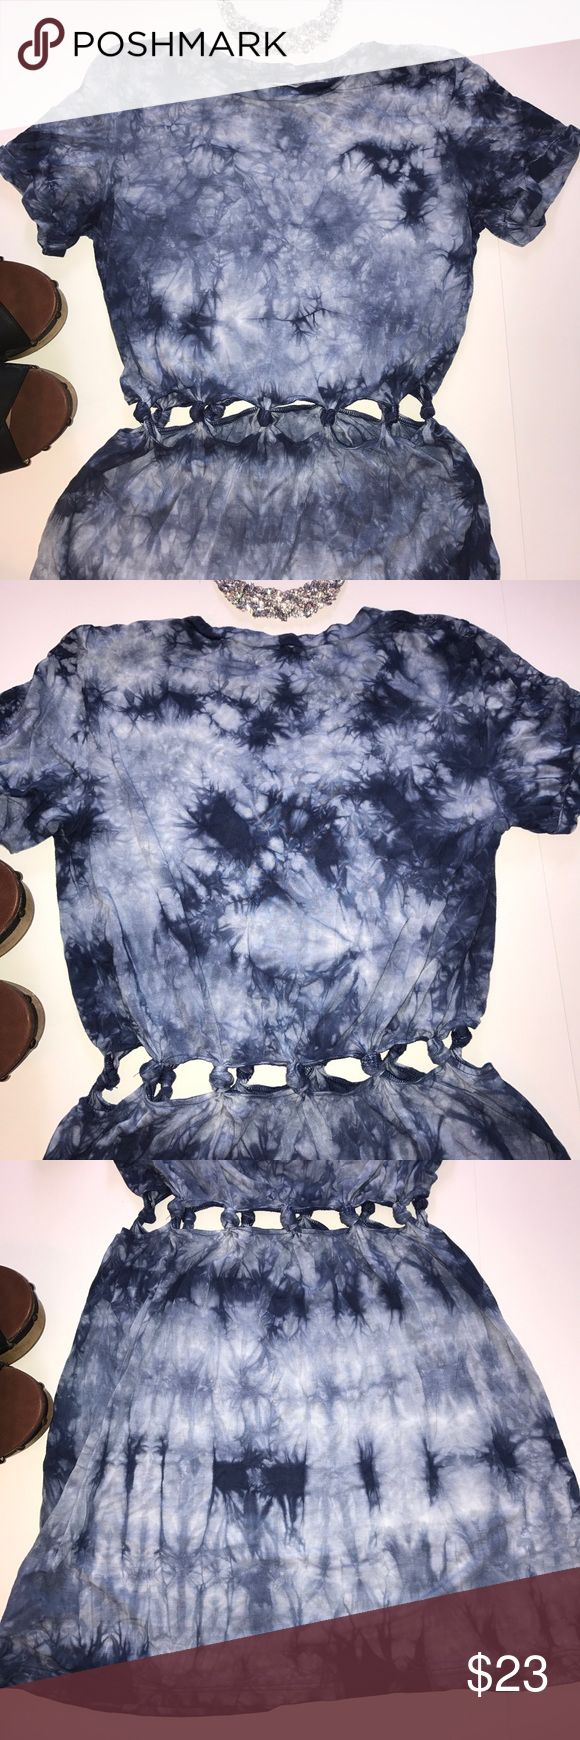 Blue Tie-Dye Knot Dress Blue tie-dye dress with cutout knotted middle. Only worn once. In great condition. Bundle up or feel free to leave an offer! American Eagle Outfitters Dresses Mini